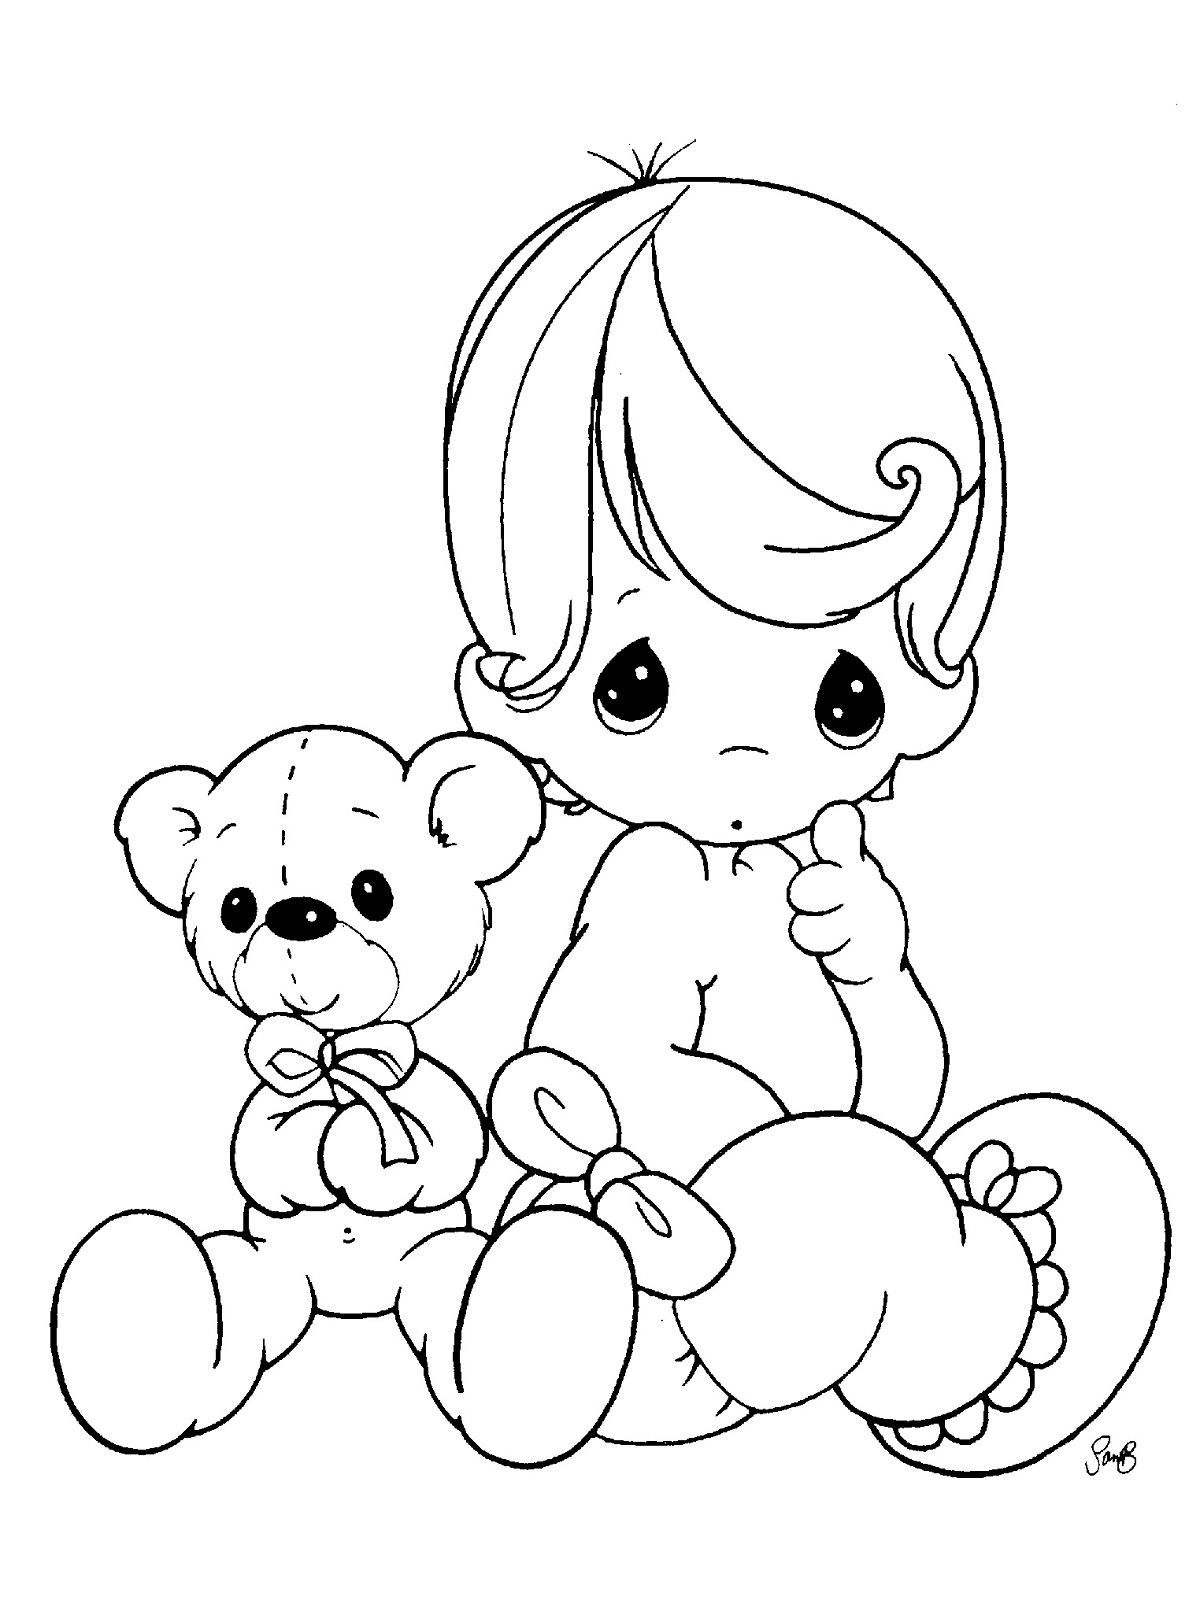 cloudbabies coloring pages for kids - photo#31